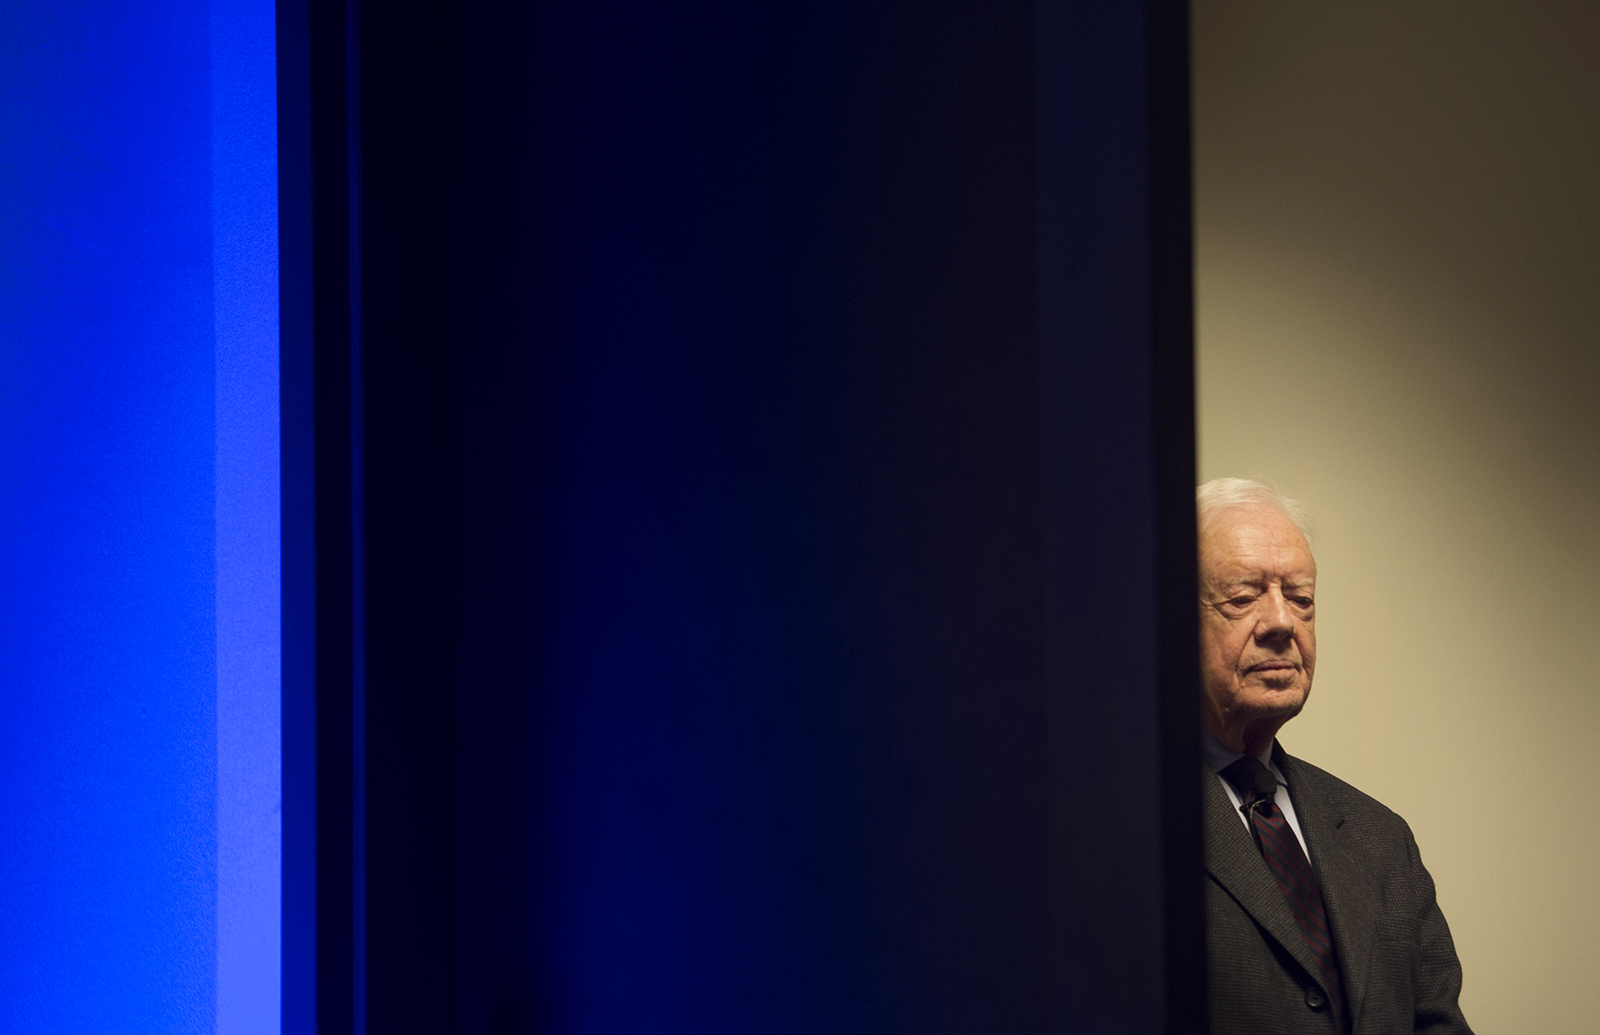 President Jimmy Carter © 2014 Nikki Kahn/The Washington PostALL RIGHTS RESERVED